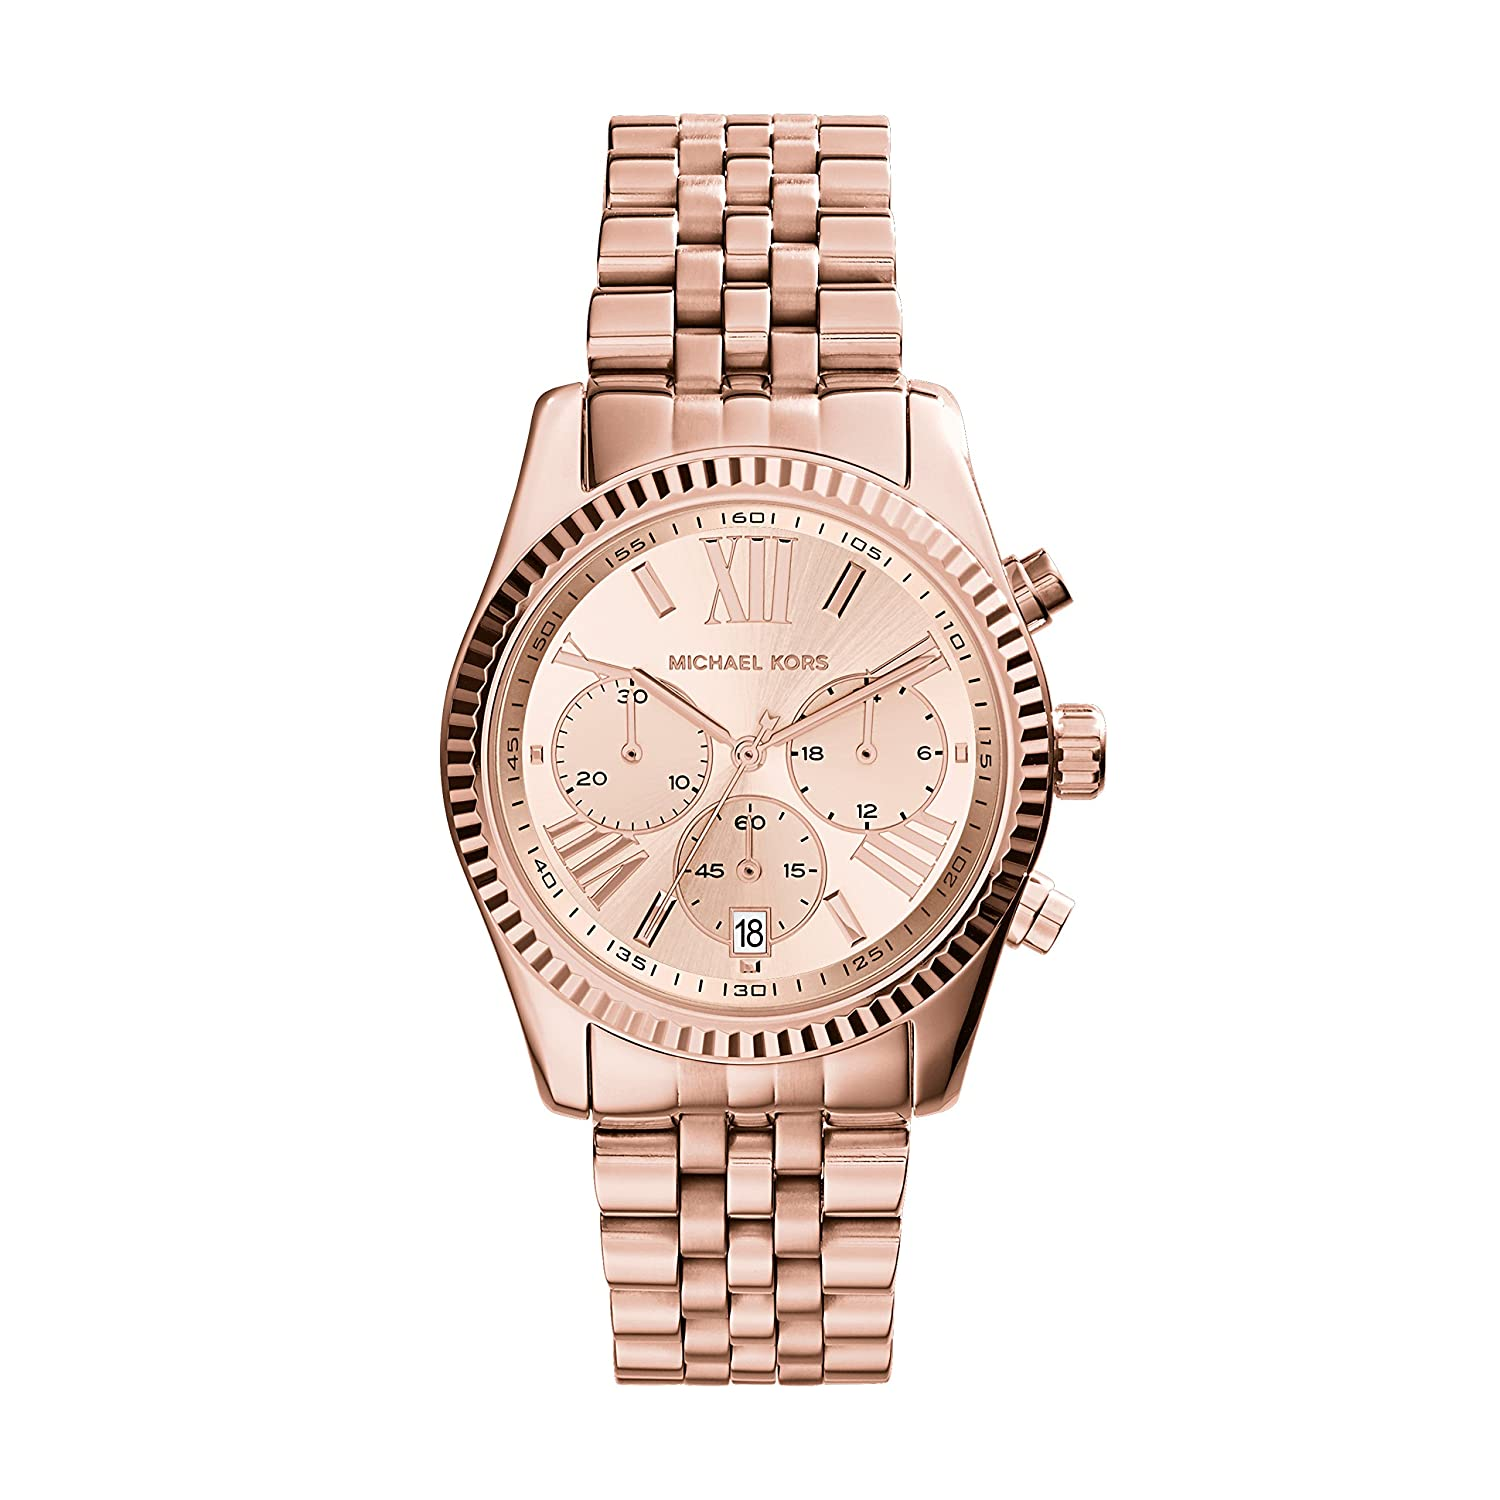 2b86203eb8f8 Amazon.com  Michael Kors Women s MK5569 Lexington Rose Gold-Tone Stainless Steel  Watch  Michael Kors  Watches